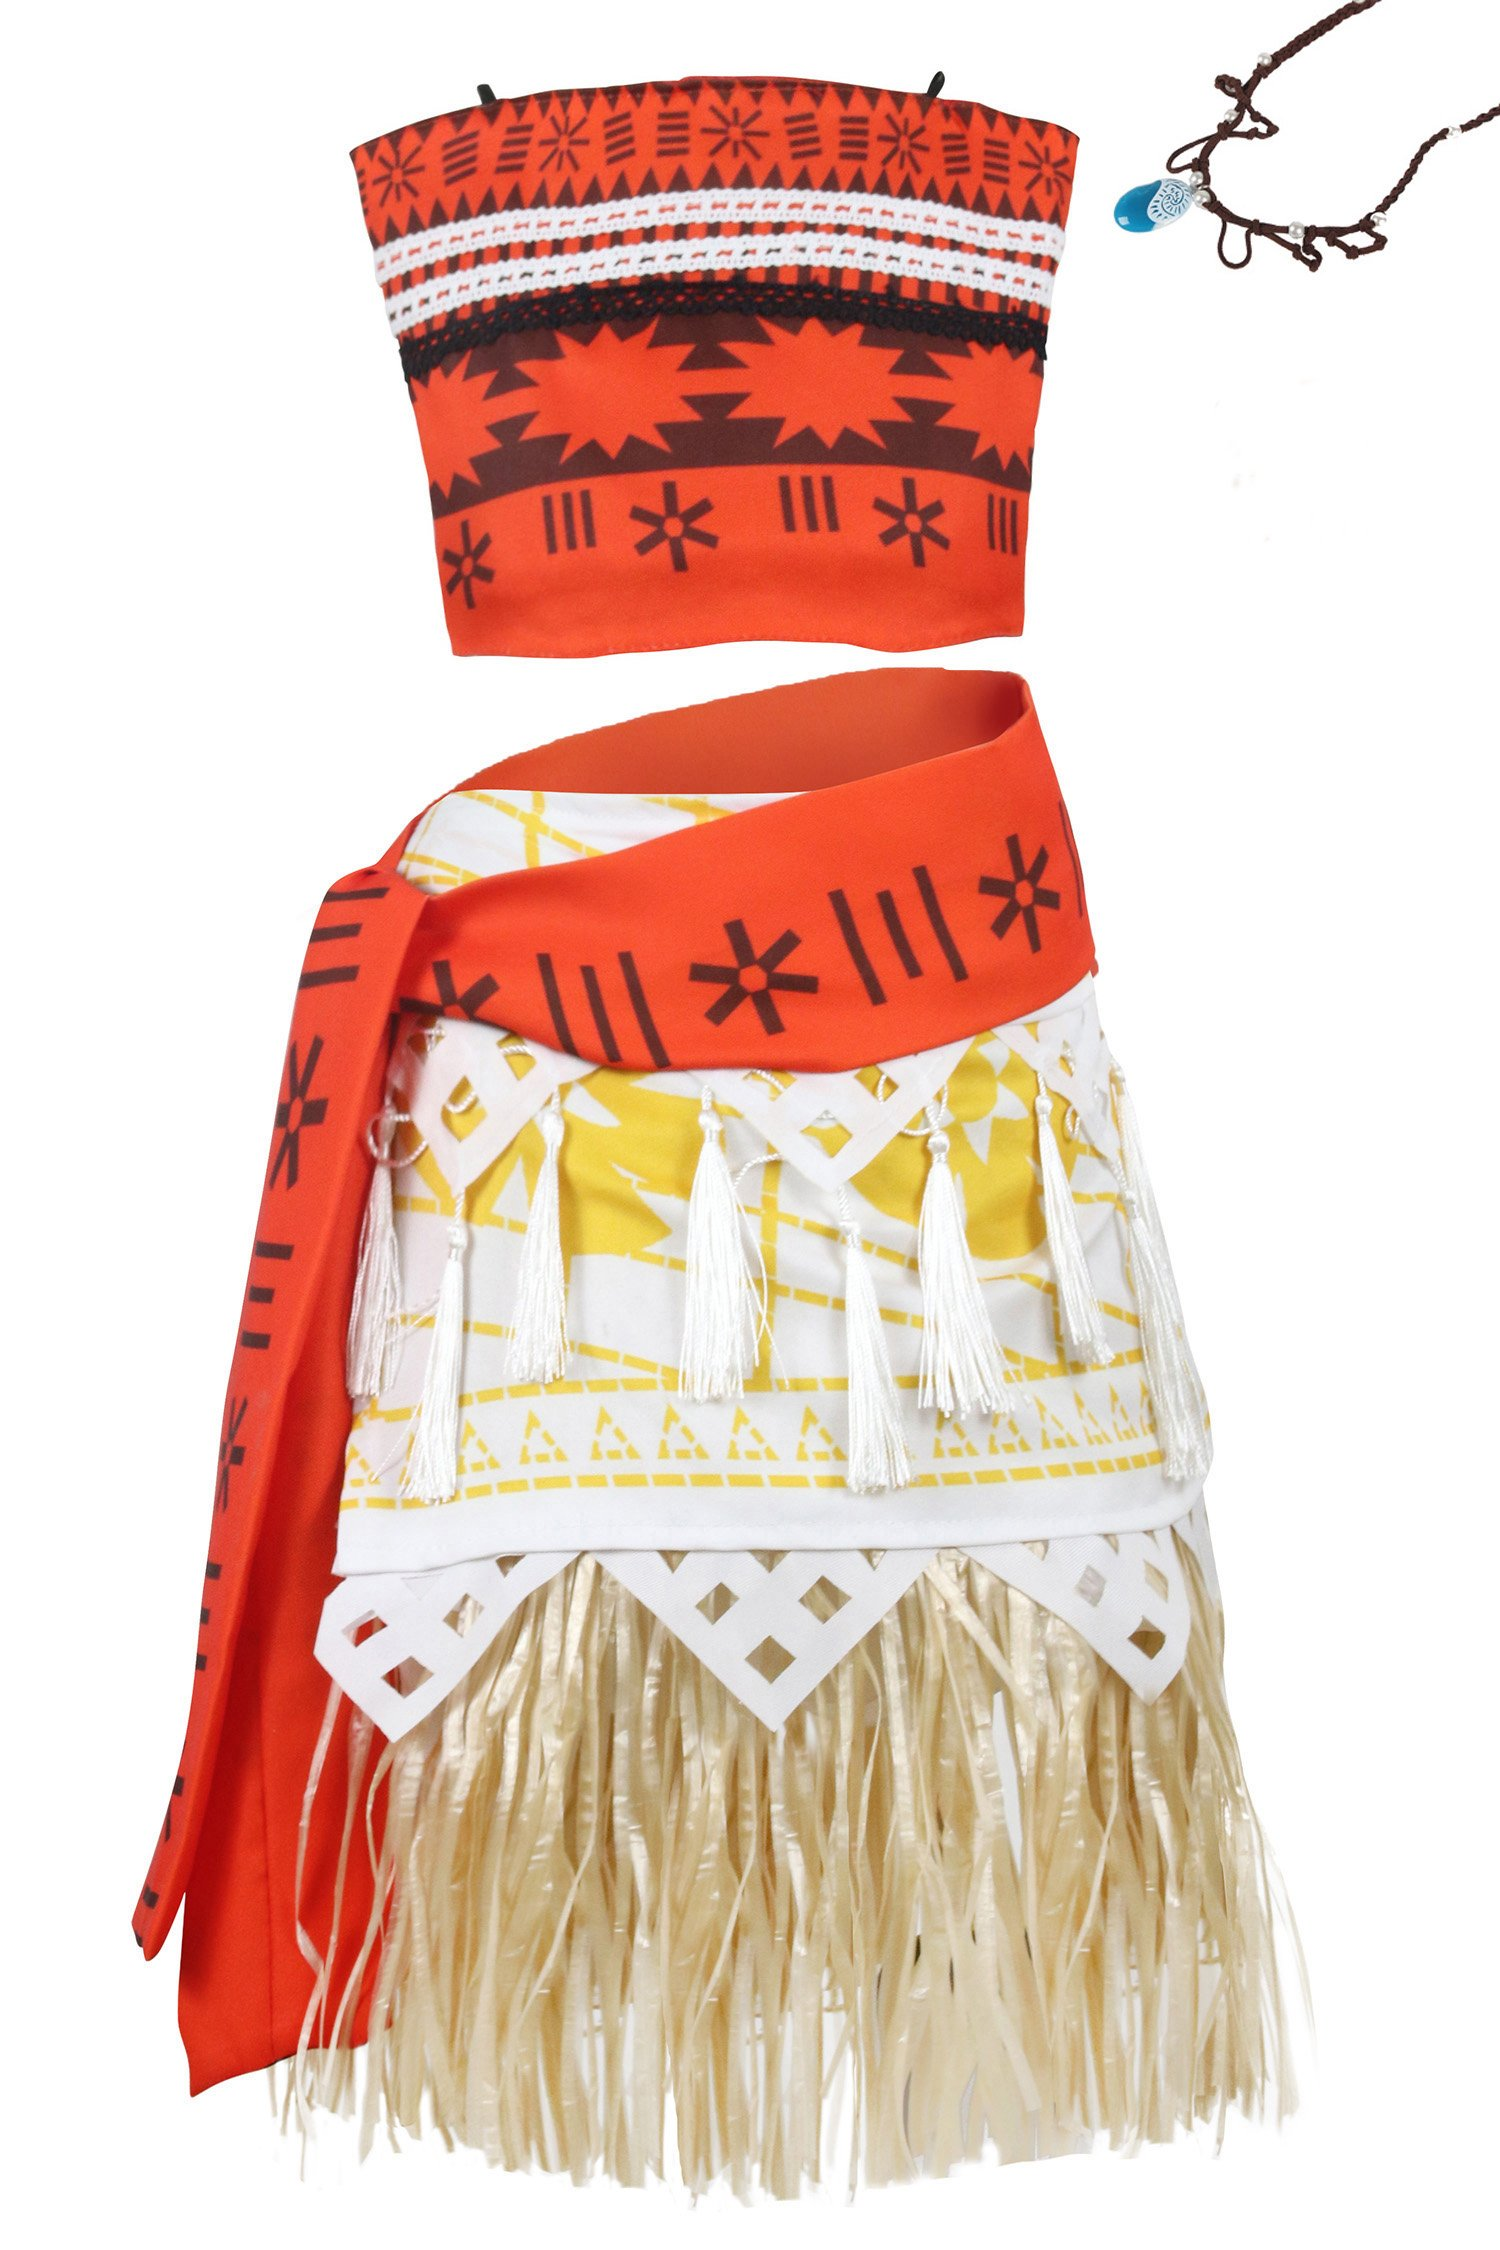 Wenge Princess Moana Outfit Adventure Costume Skirt Set Necklace Cosplay for Girls (Adult-M, Adult Moana) by Wenge (Image #2)